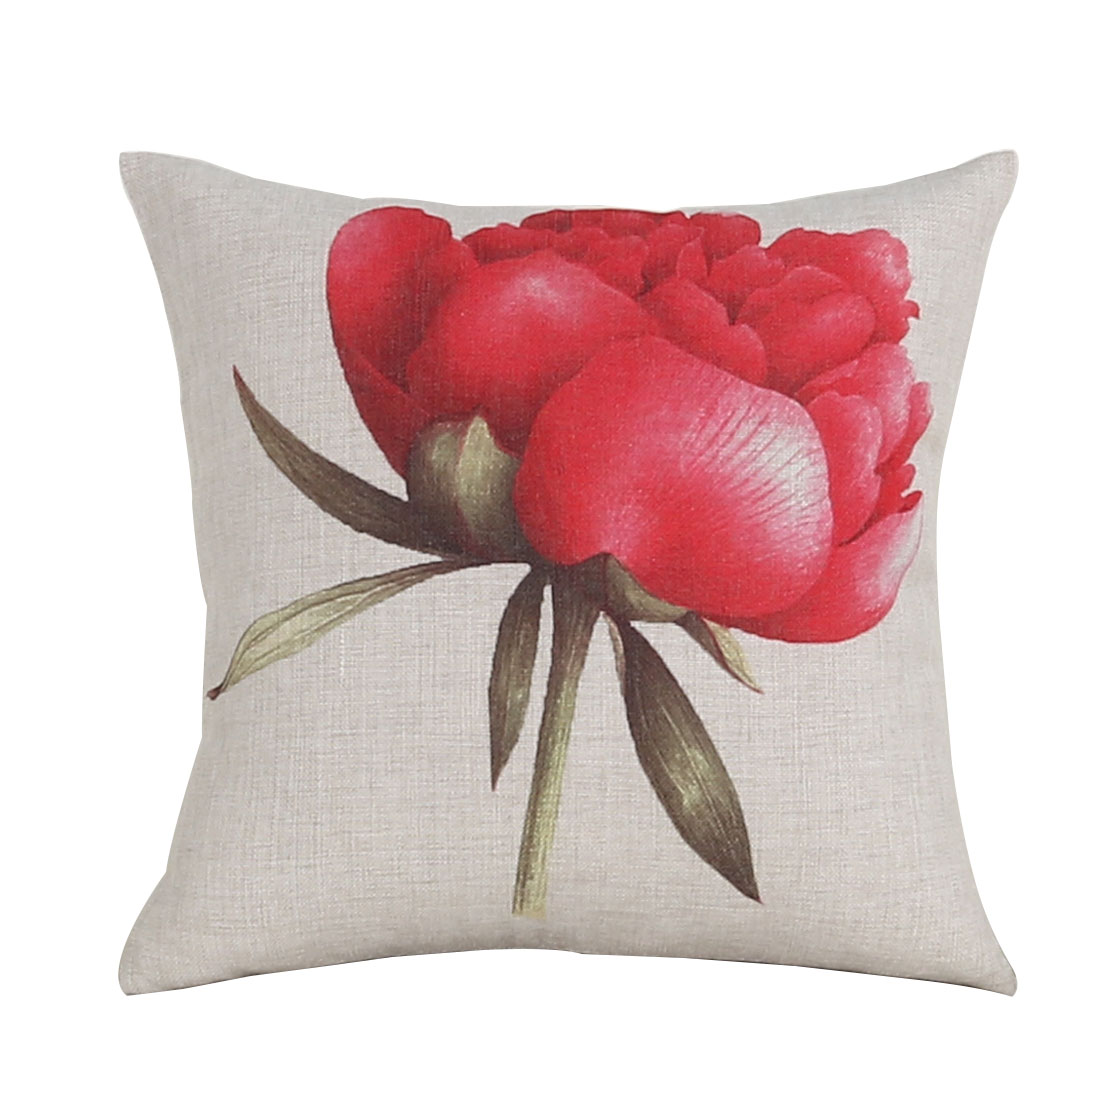 Household Sofa Cotton Linen Rose Pattern Waist Throw Cushion Cover Pillow Case